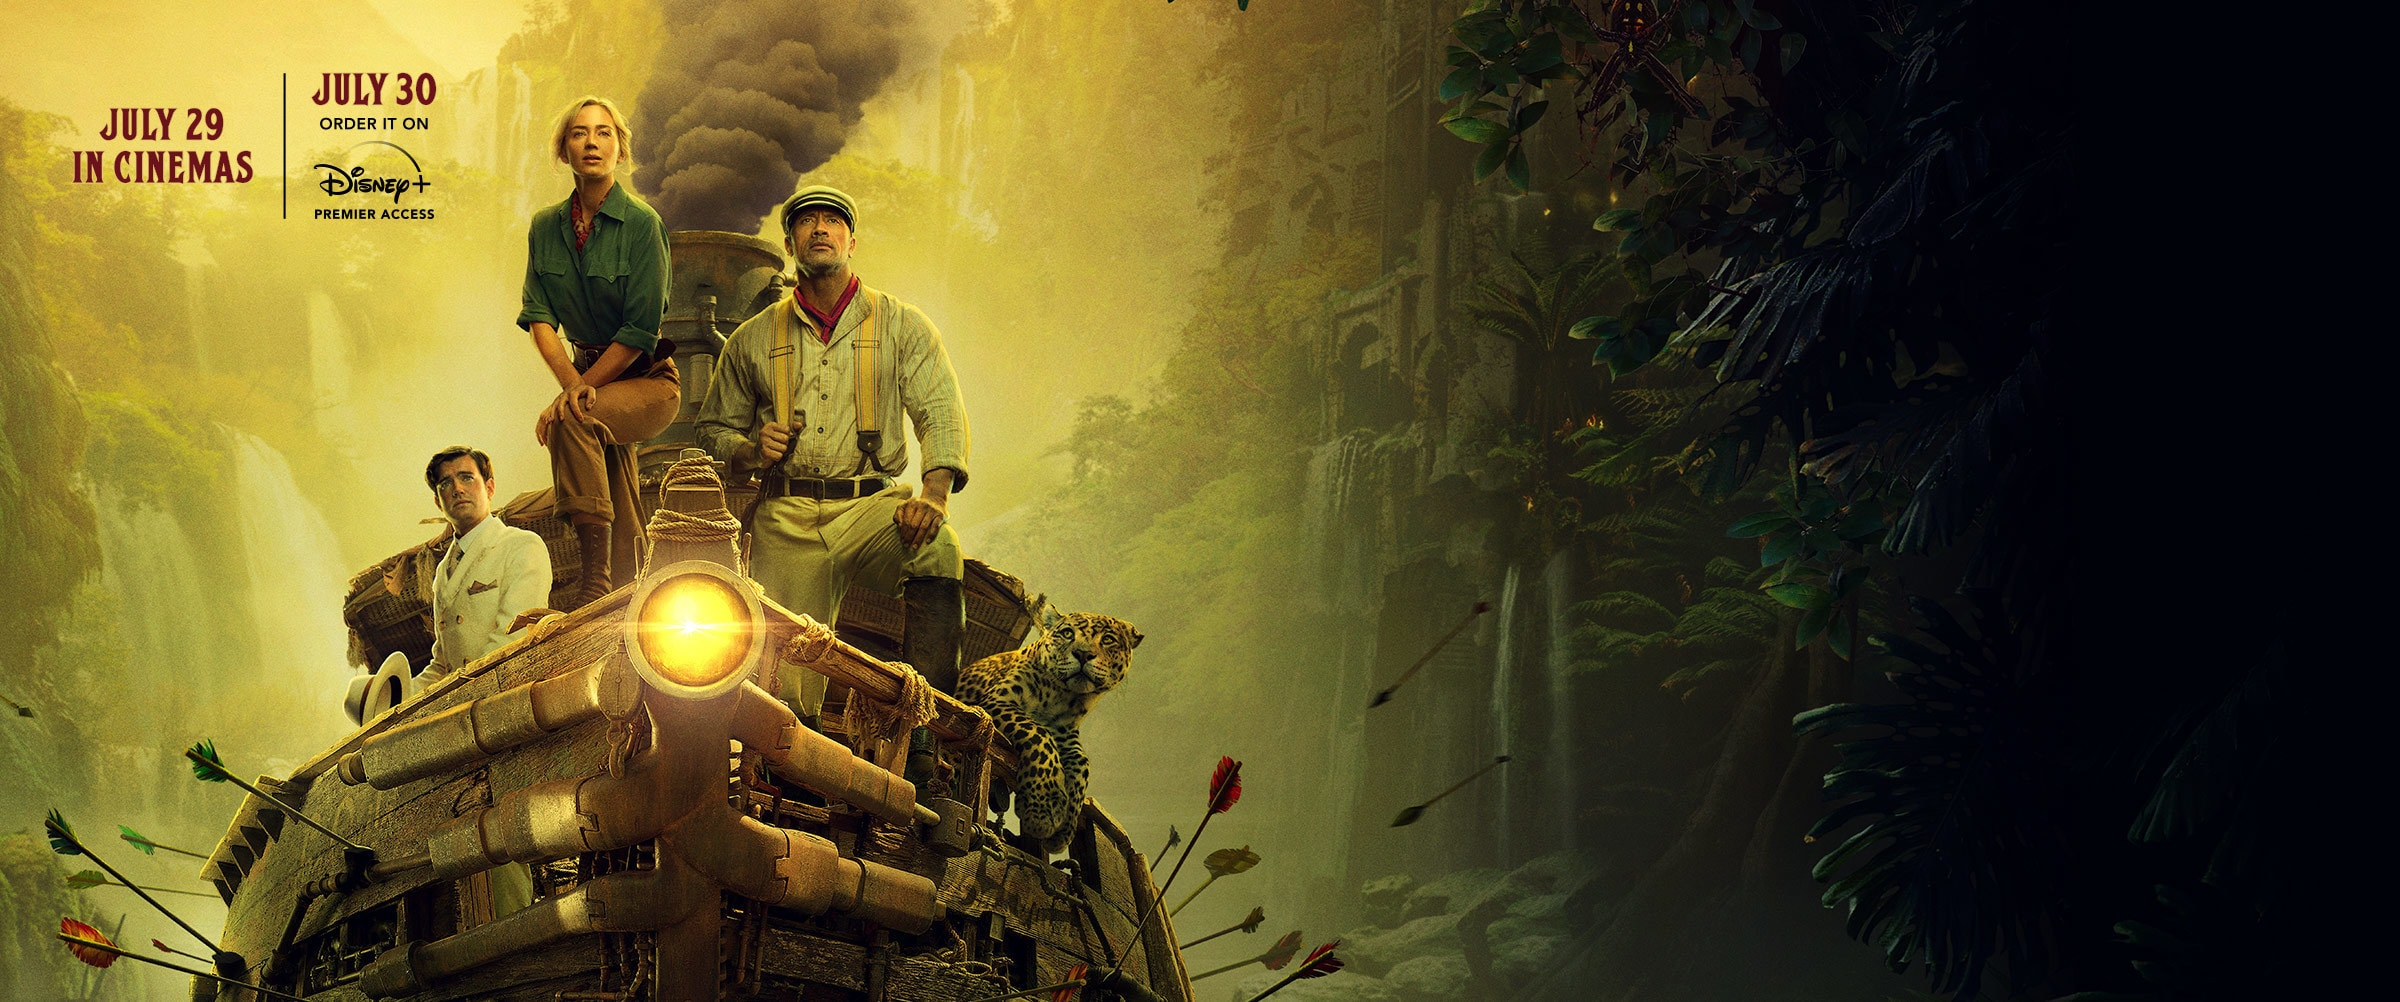 Disney's Jungle Cruise | Buy movie tickets and order on Disney+